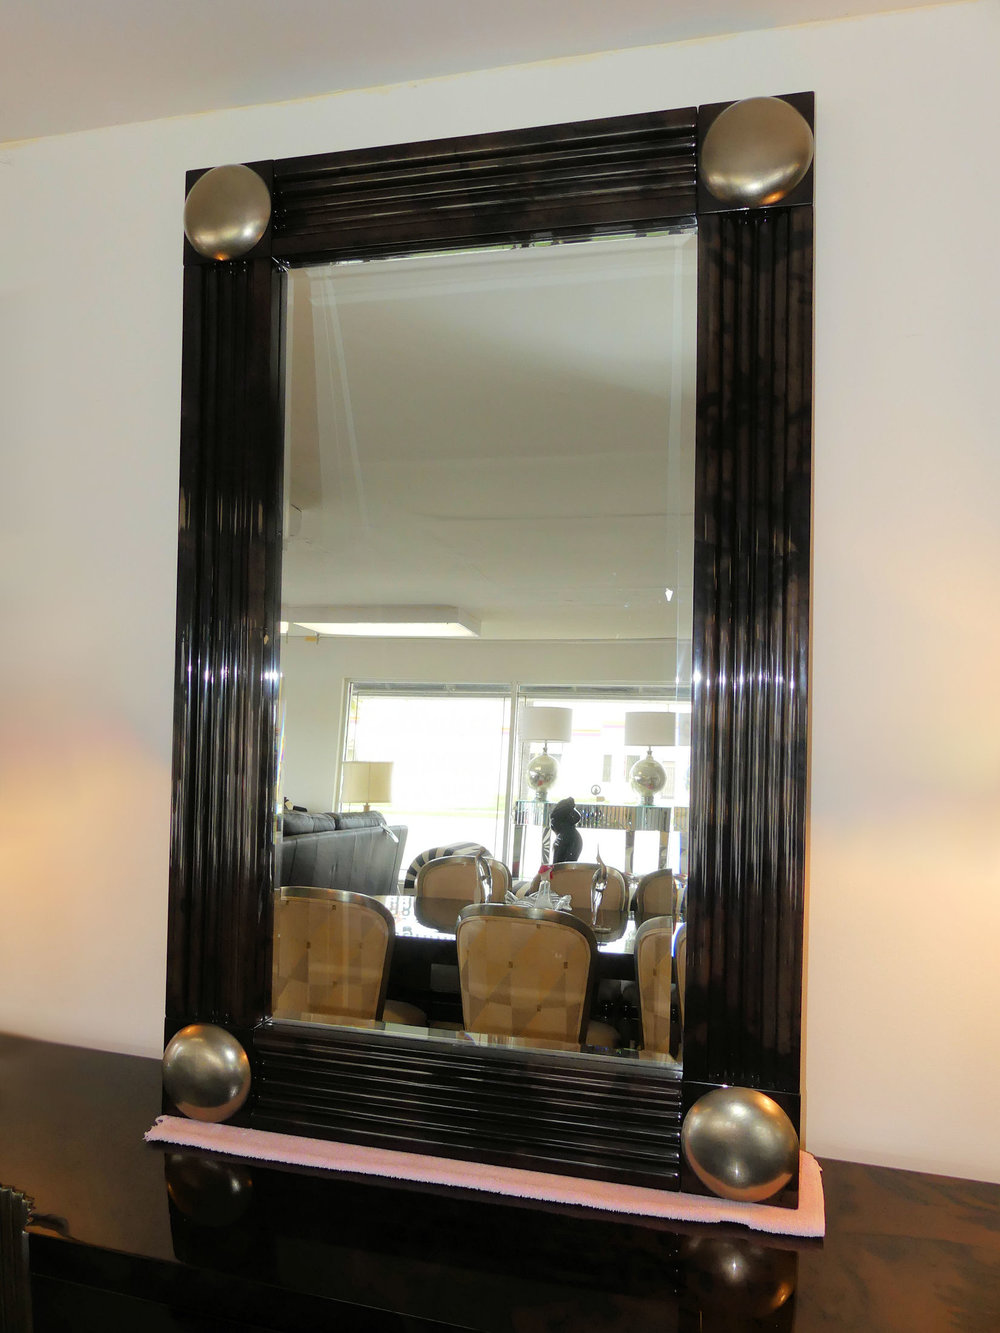 View the matching Mirror here...